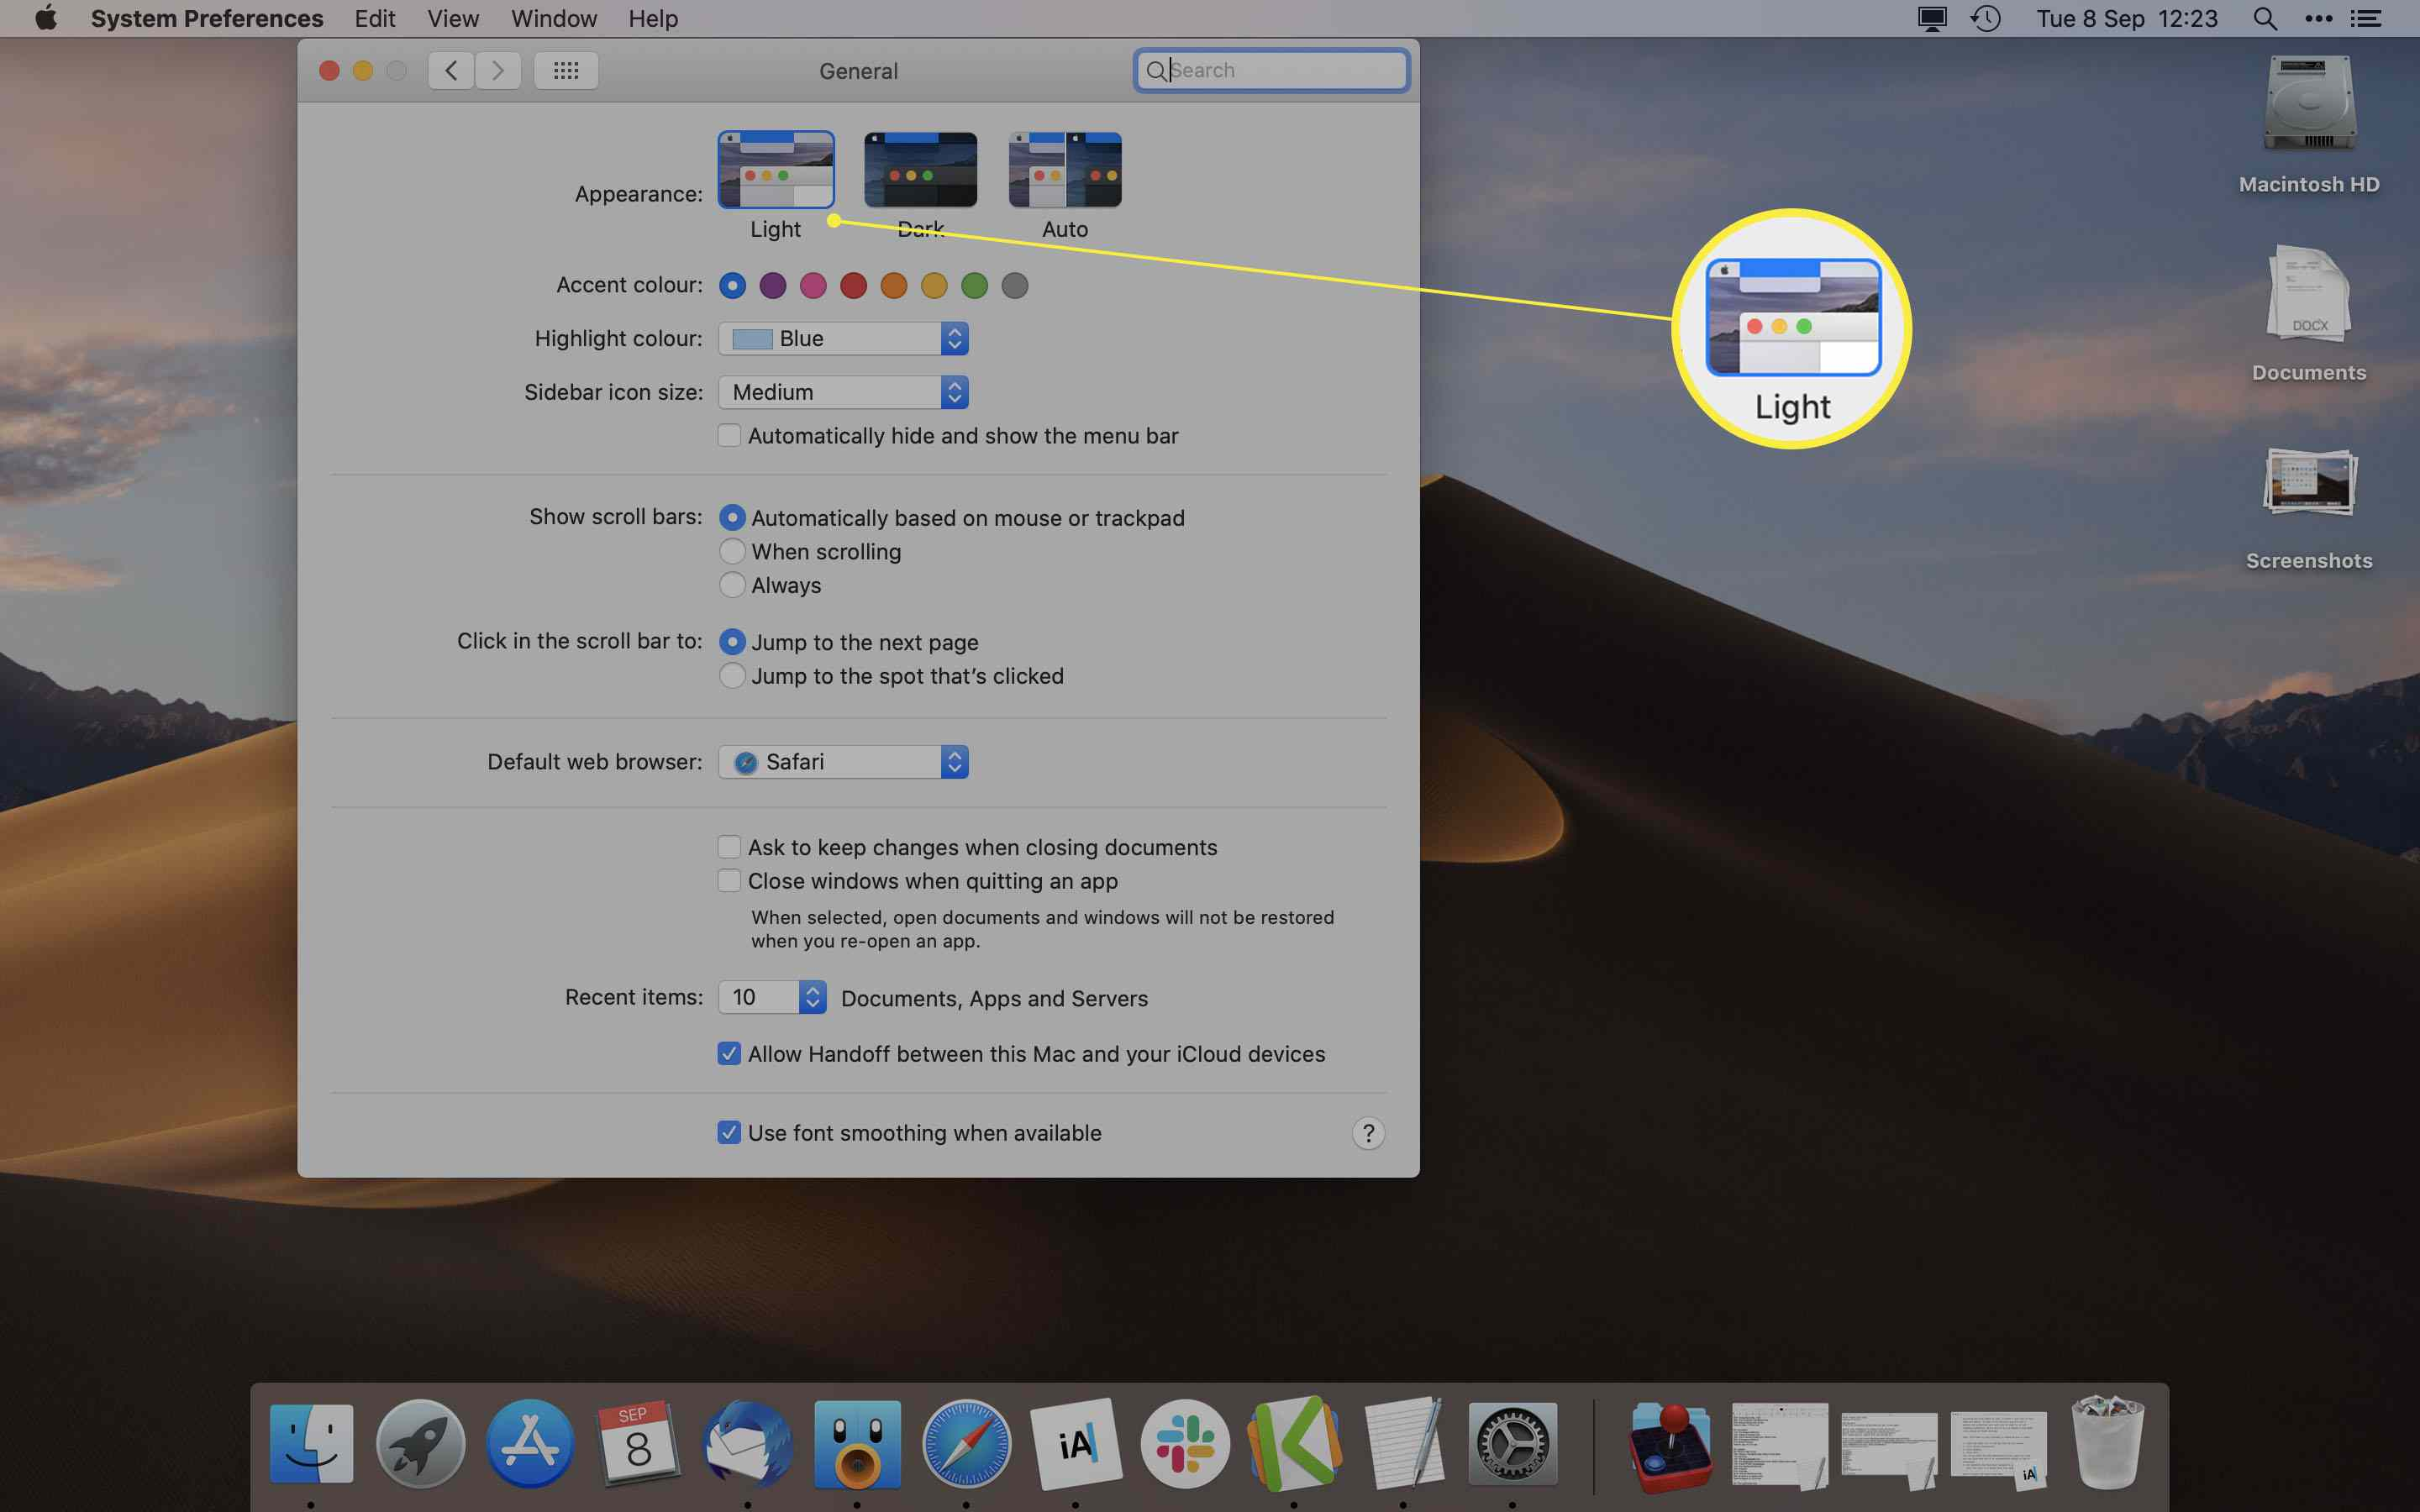 MacOS System Preferences with Light appearance highlighted